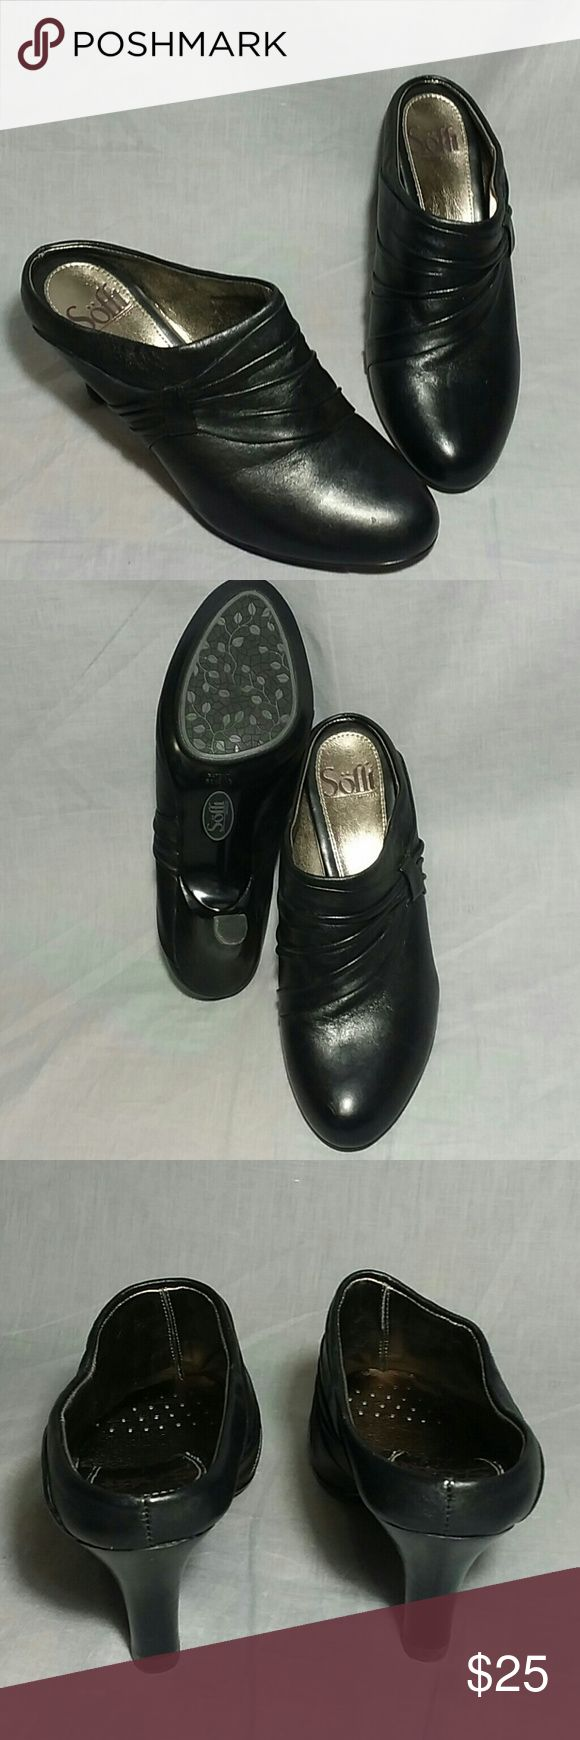 "Women's Sofft Clogs shoes black 6.5 M heels 3"" Women's leather heels Shoes item is in a good condition. Sofft Shoes Mules & Clogs"